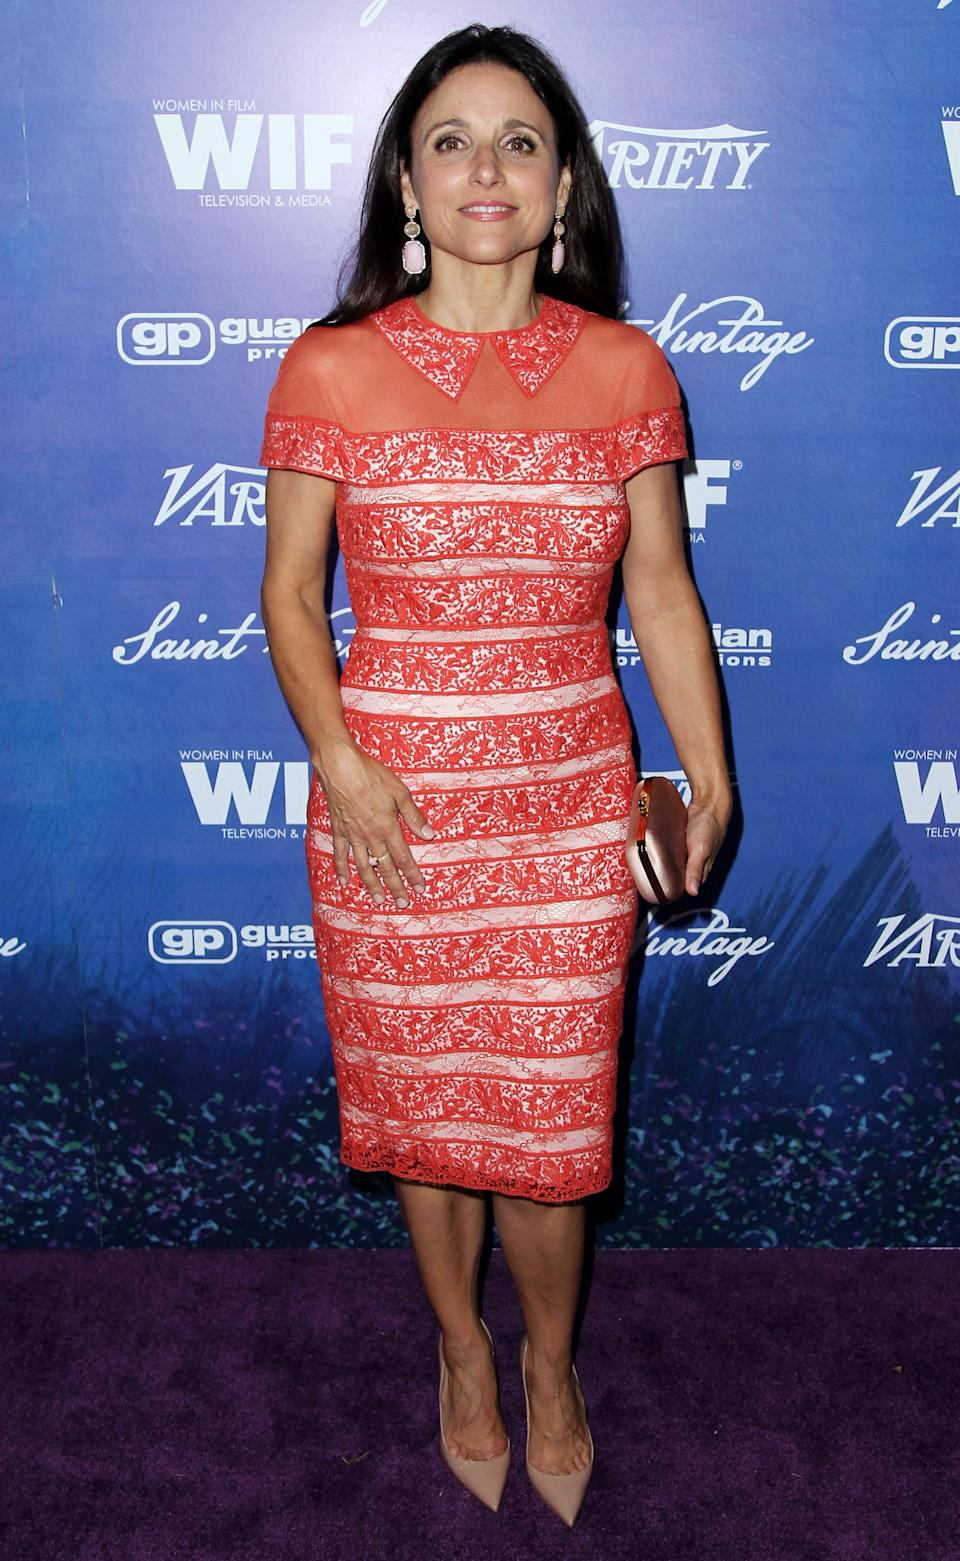 Julia Louis-Dreyfus attends the Variety and Women in Film Pre-Emmy Event at Scarpetta on Friday, Sept. 21, 2012, in Beverly Hills, Calif. (Photo by Matt Sayles/Invision/AP)